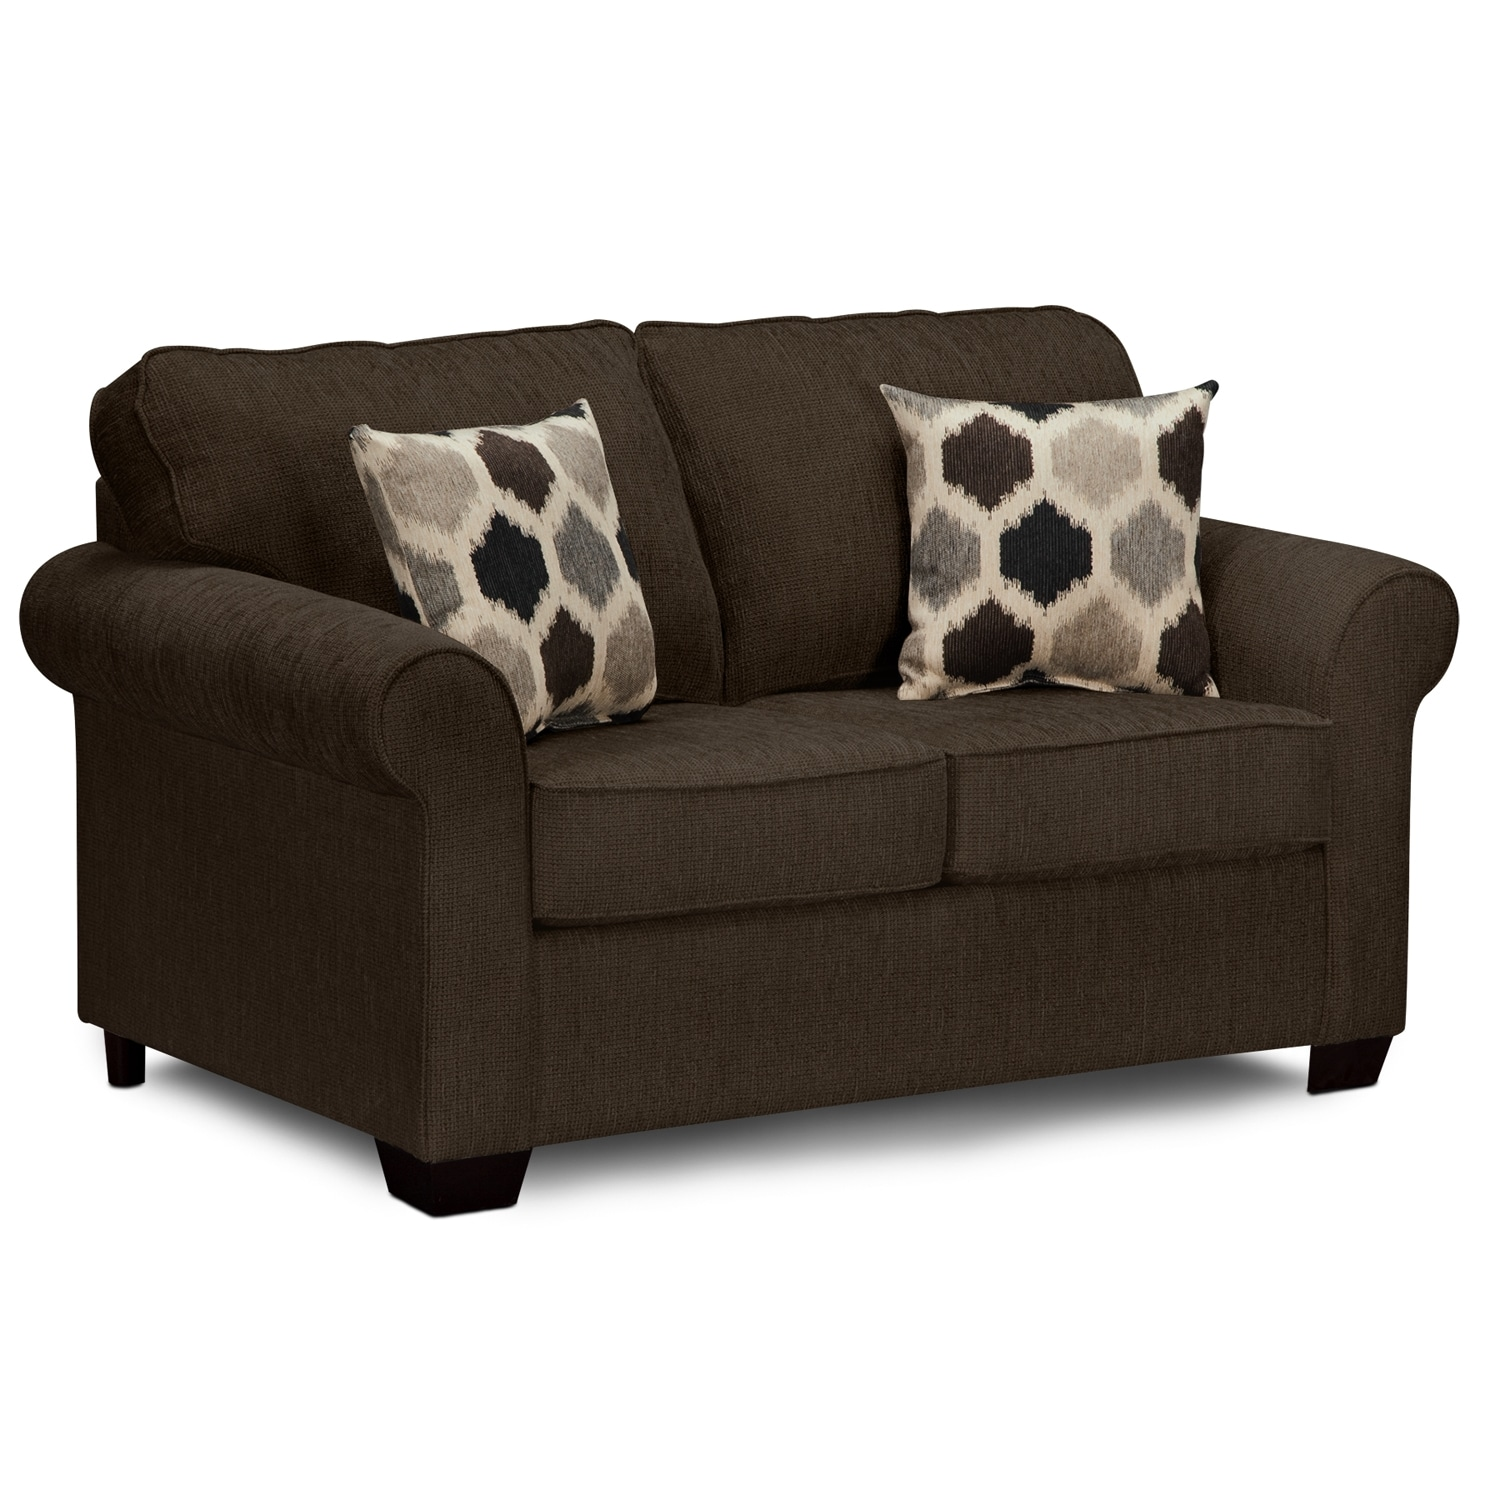 signature furniture fletcher ii upholstery twin sleeper sofa